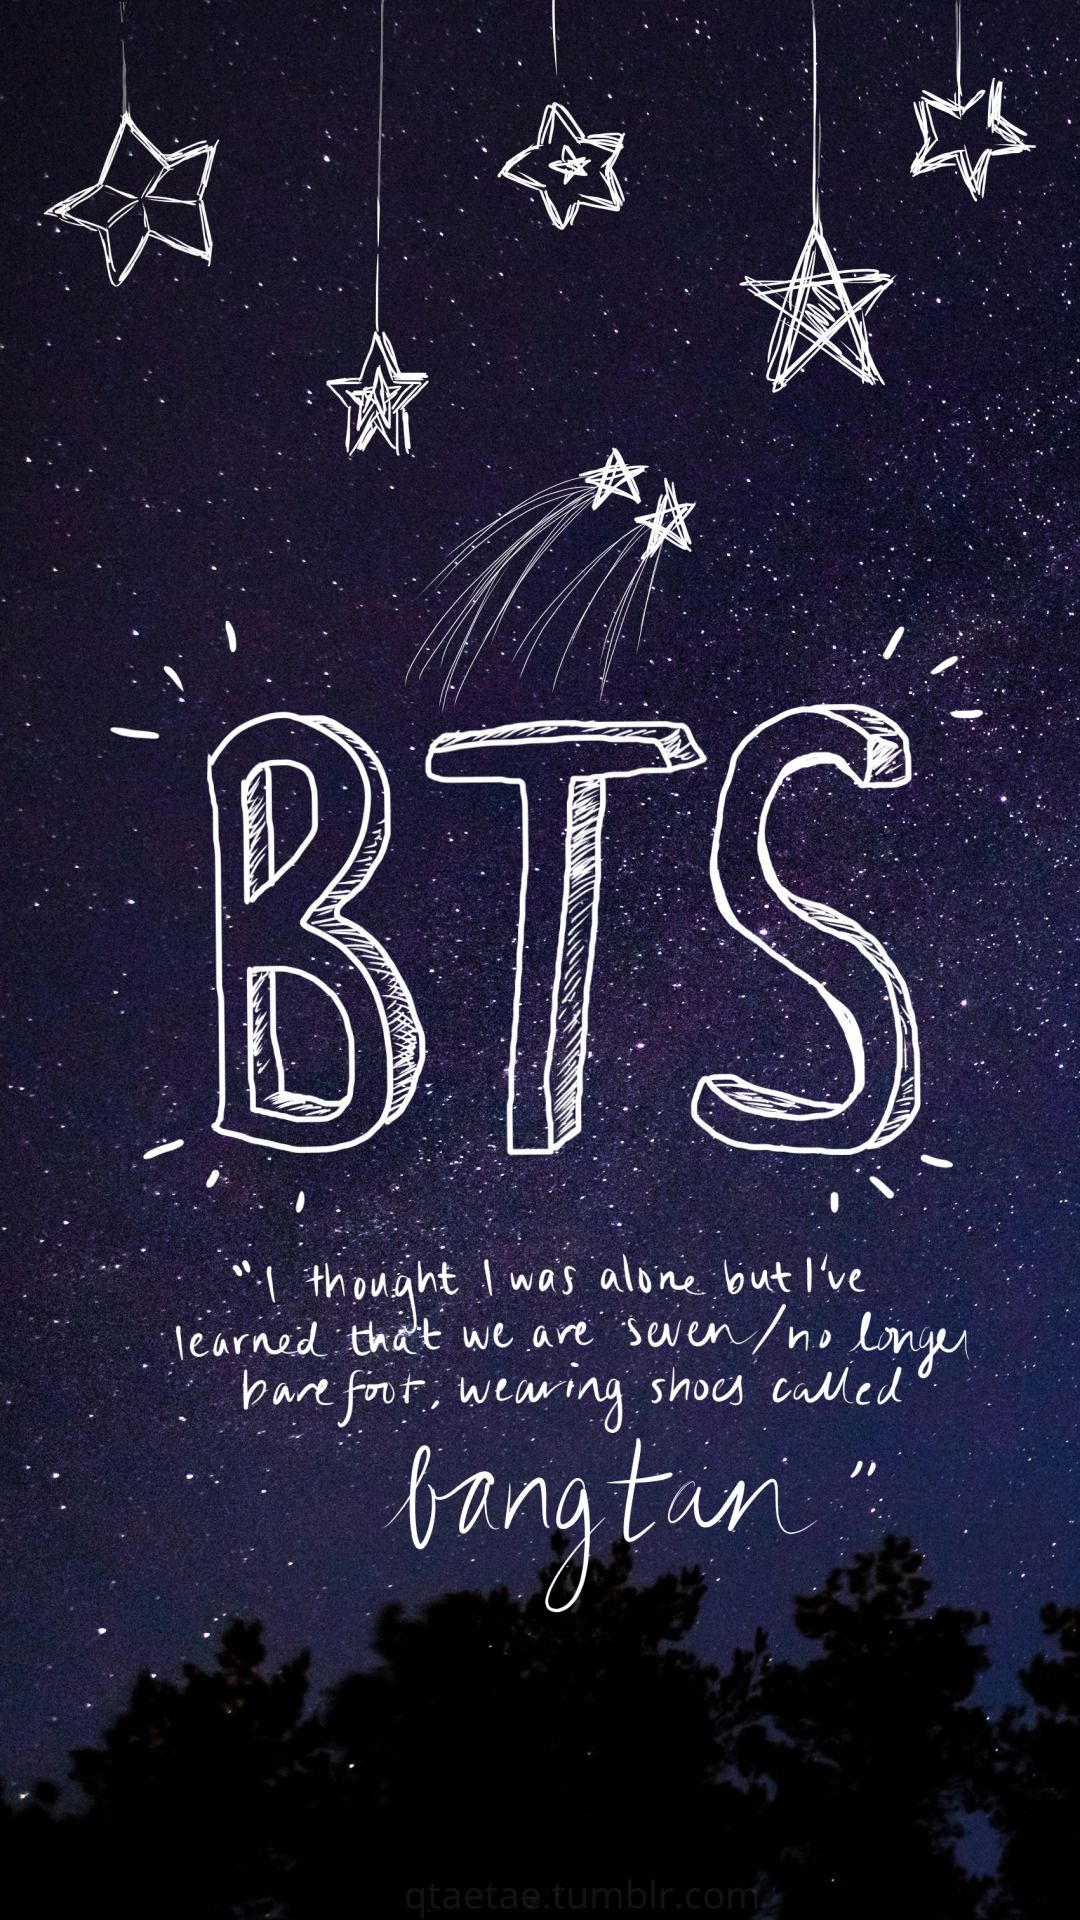 Bts iphone wallpaper tumblr -  I Thought I Was Alone But I Ve Learned That We Are Seven Bts Quotesbts Wallpaperarmy